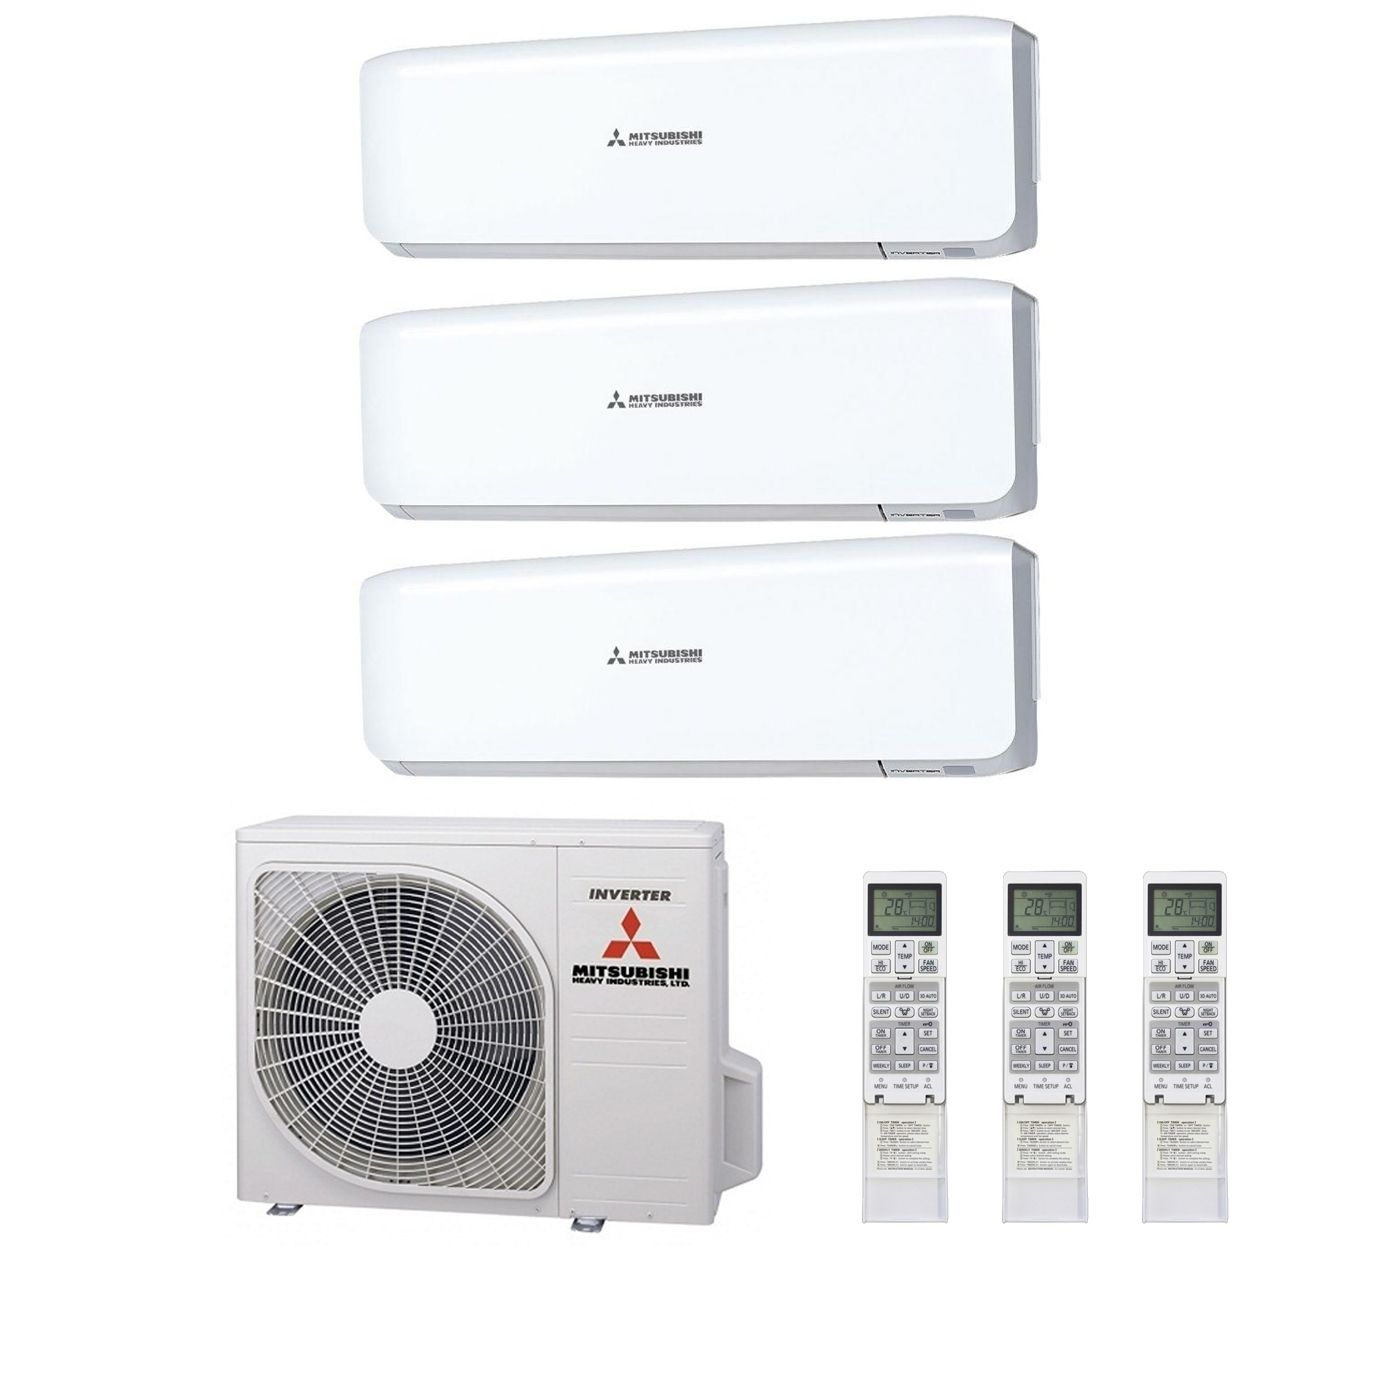 hight resolution of mitsubishi heavy industries air conditioning scm60zm s multi inverter heat pump 3 x srk25zs s wall mounted a 240v 50hz